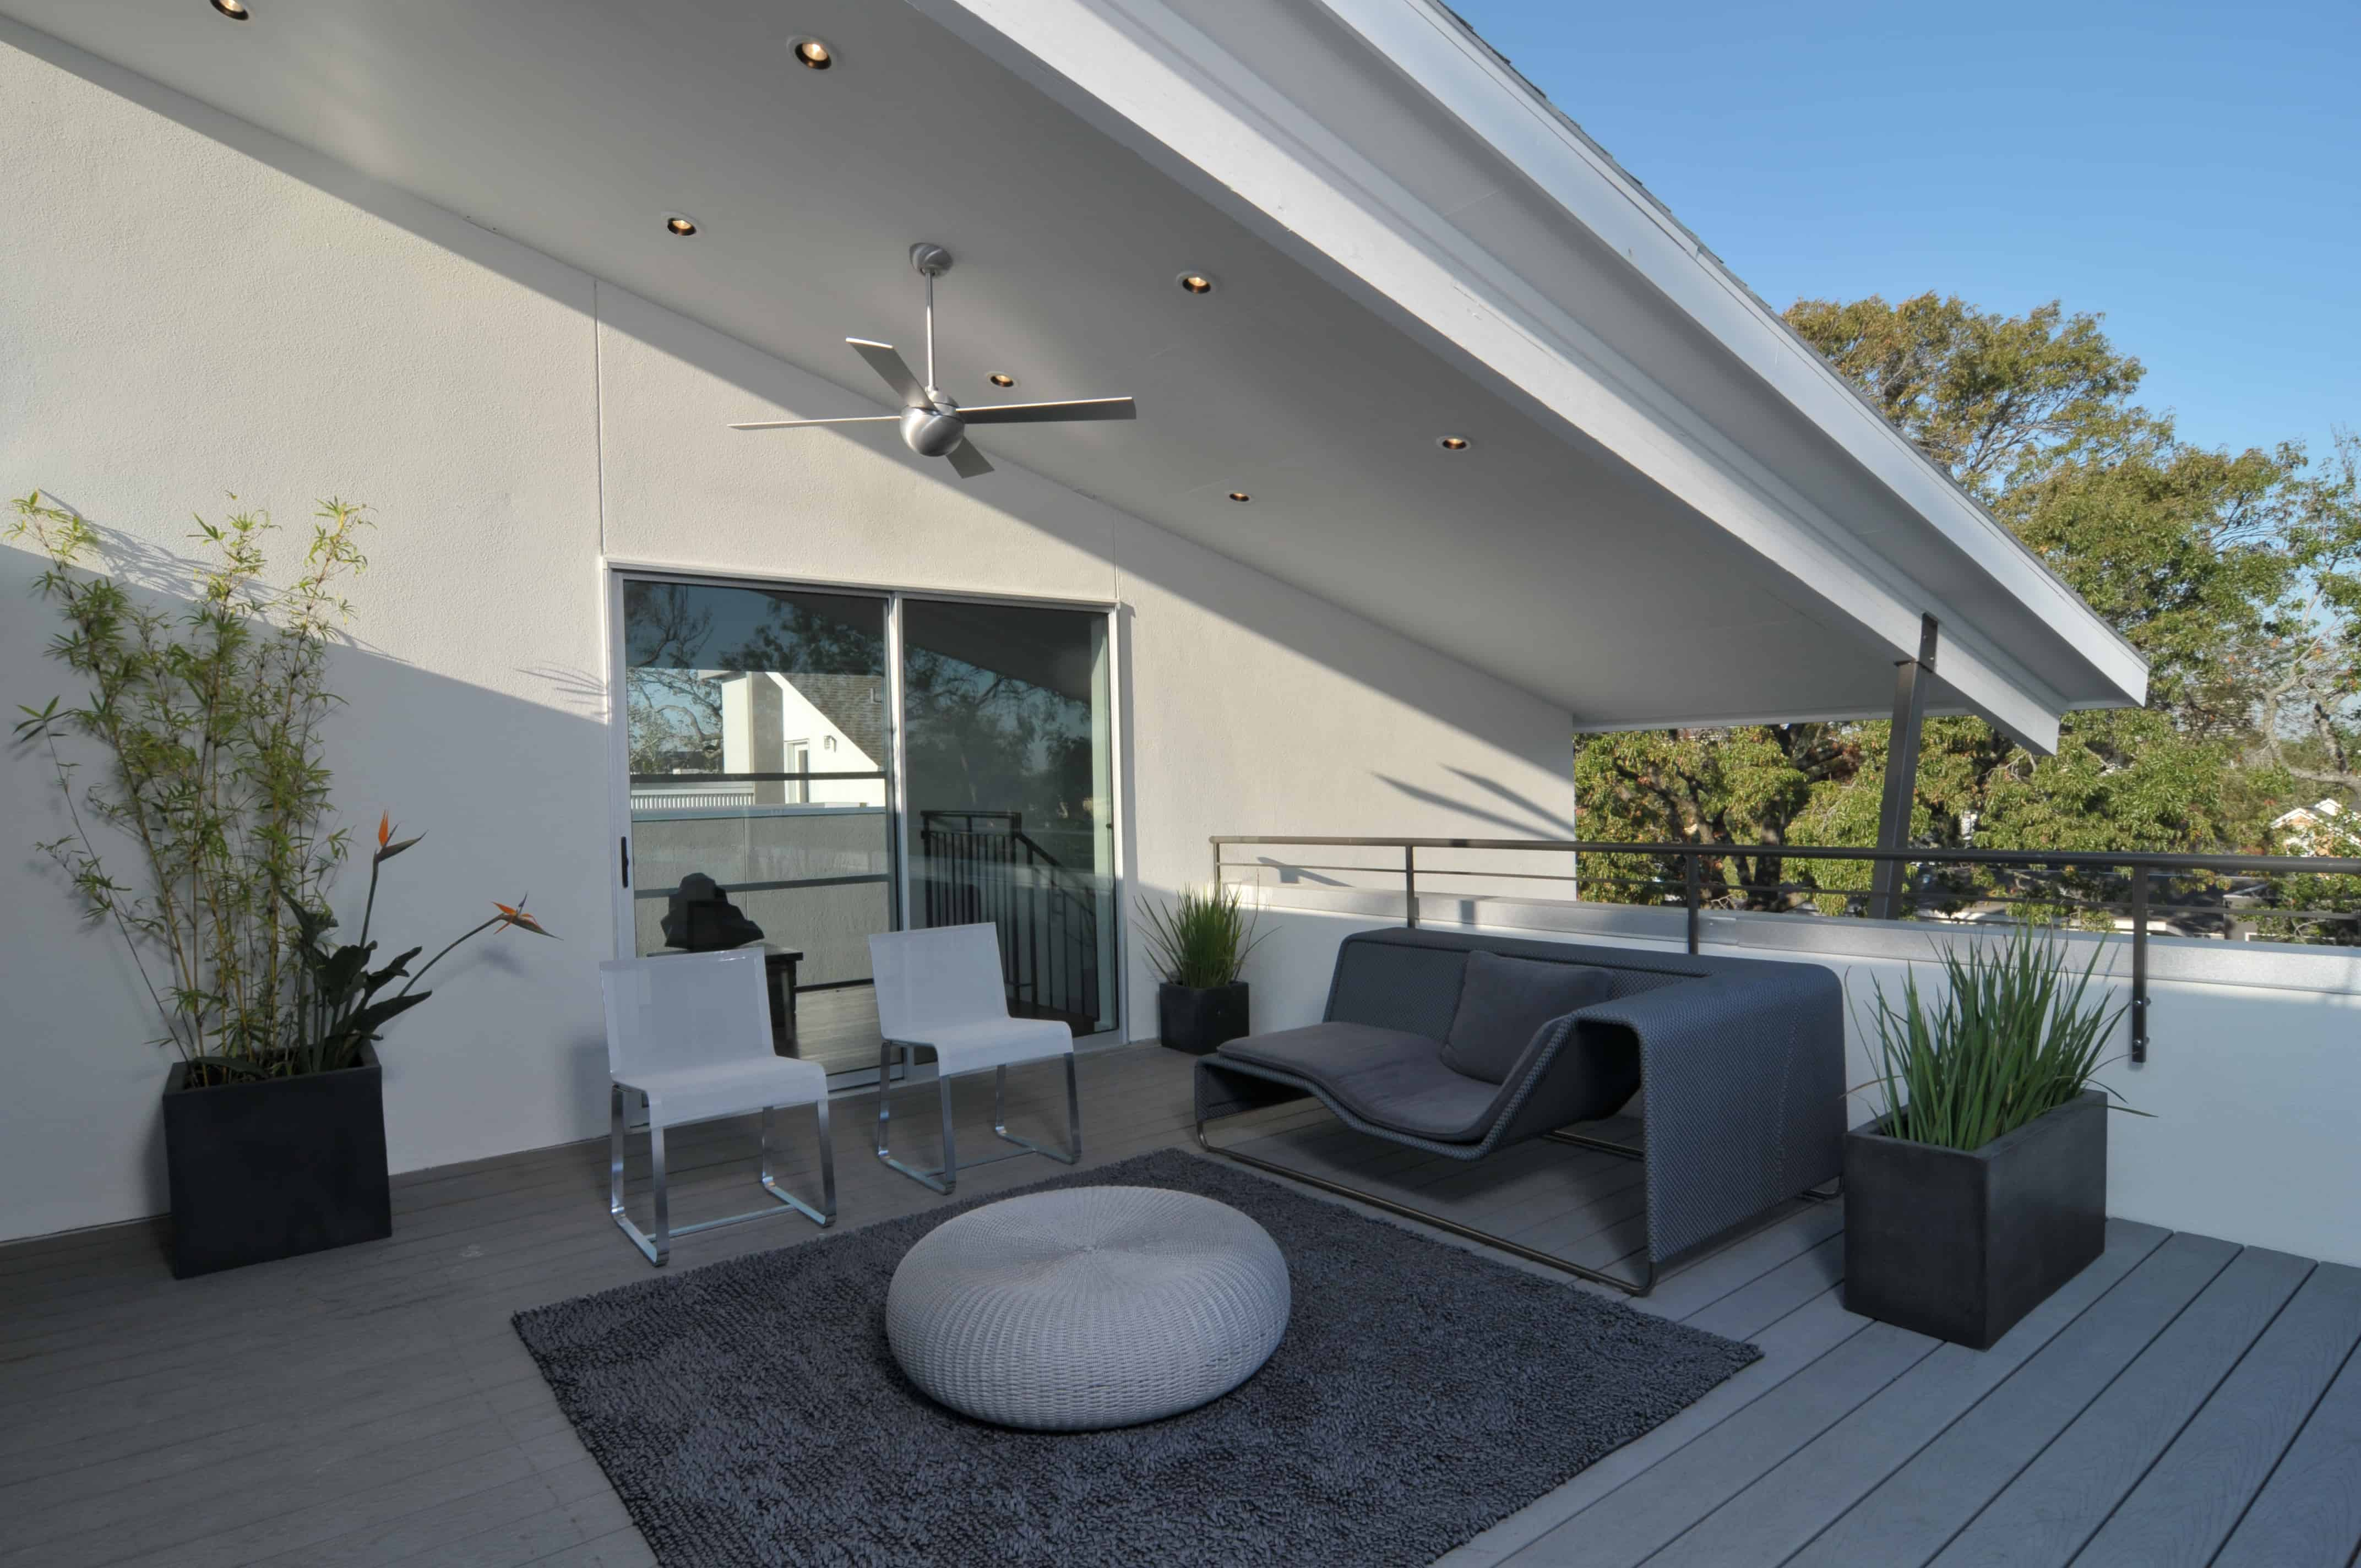 Southmore terrace sustainable houston modern home rooftop terrace.